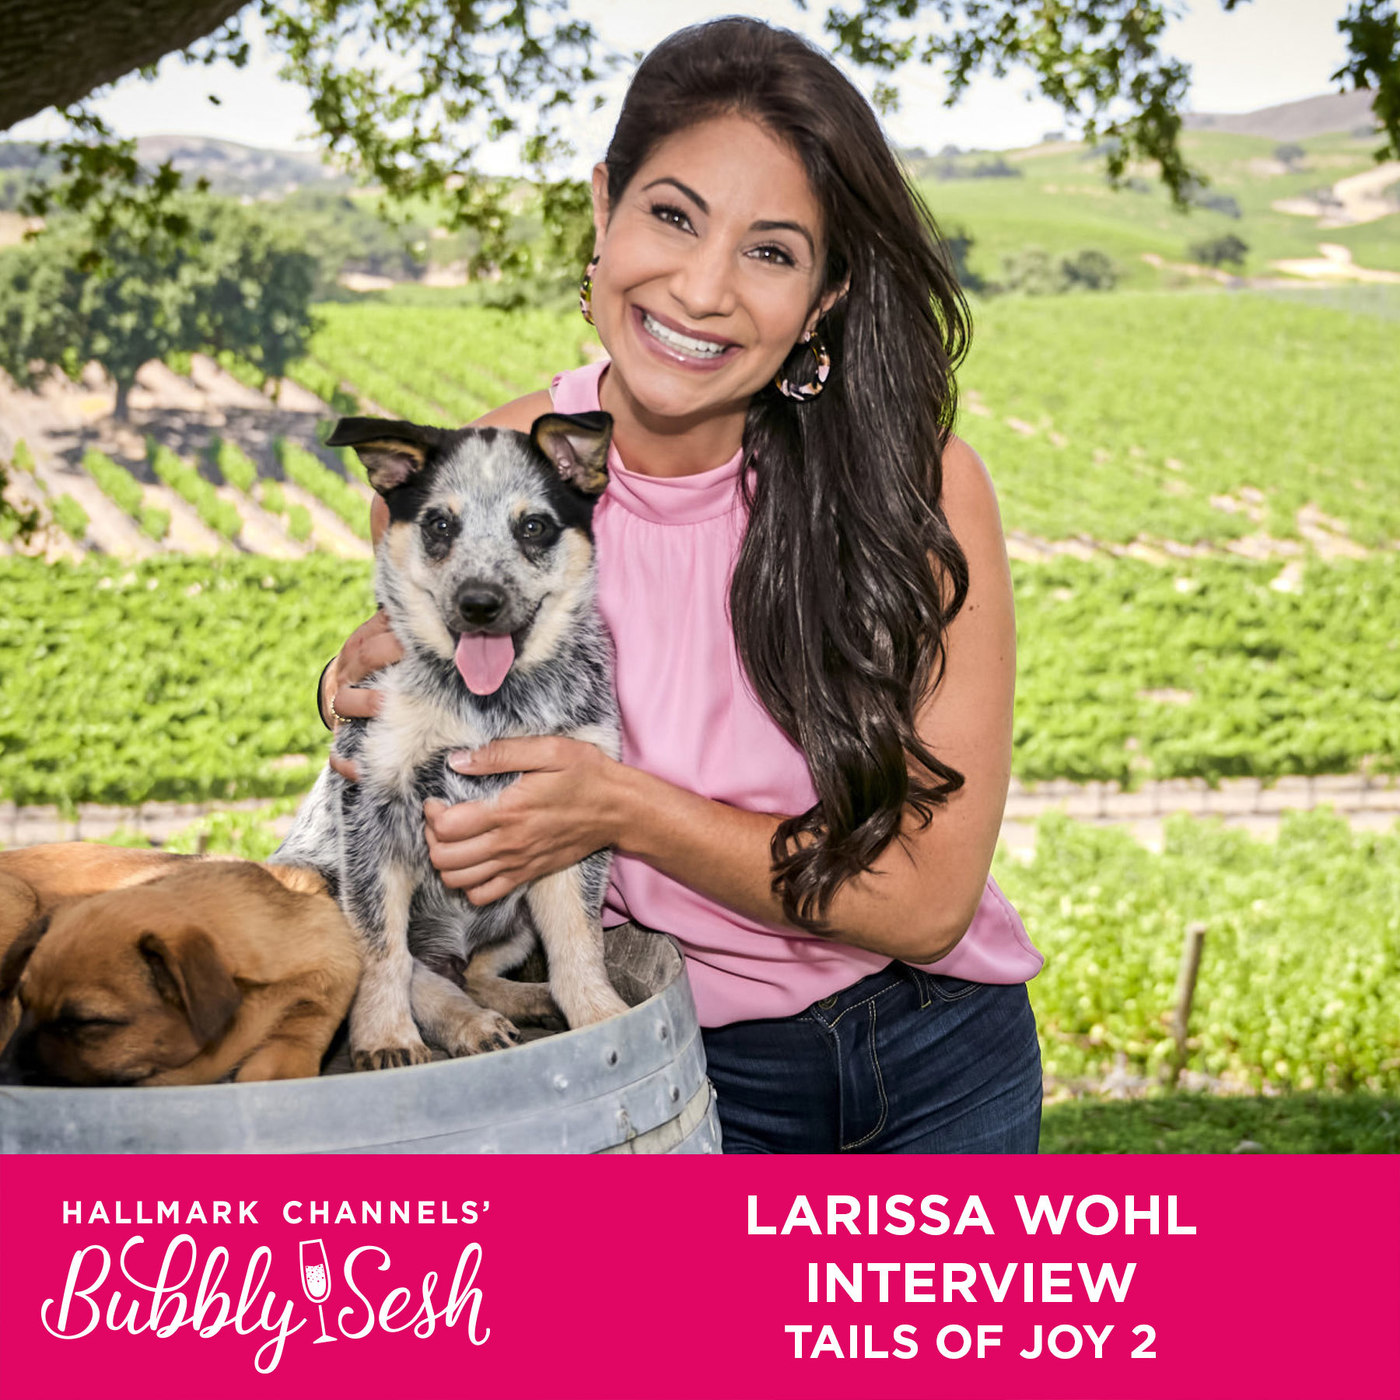 Larissa Wohl, Tails of Joy 2 Interview